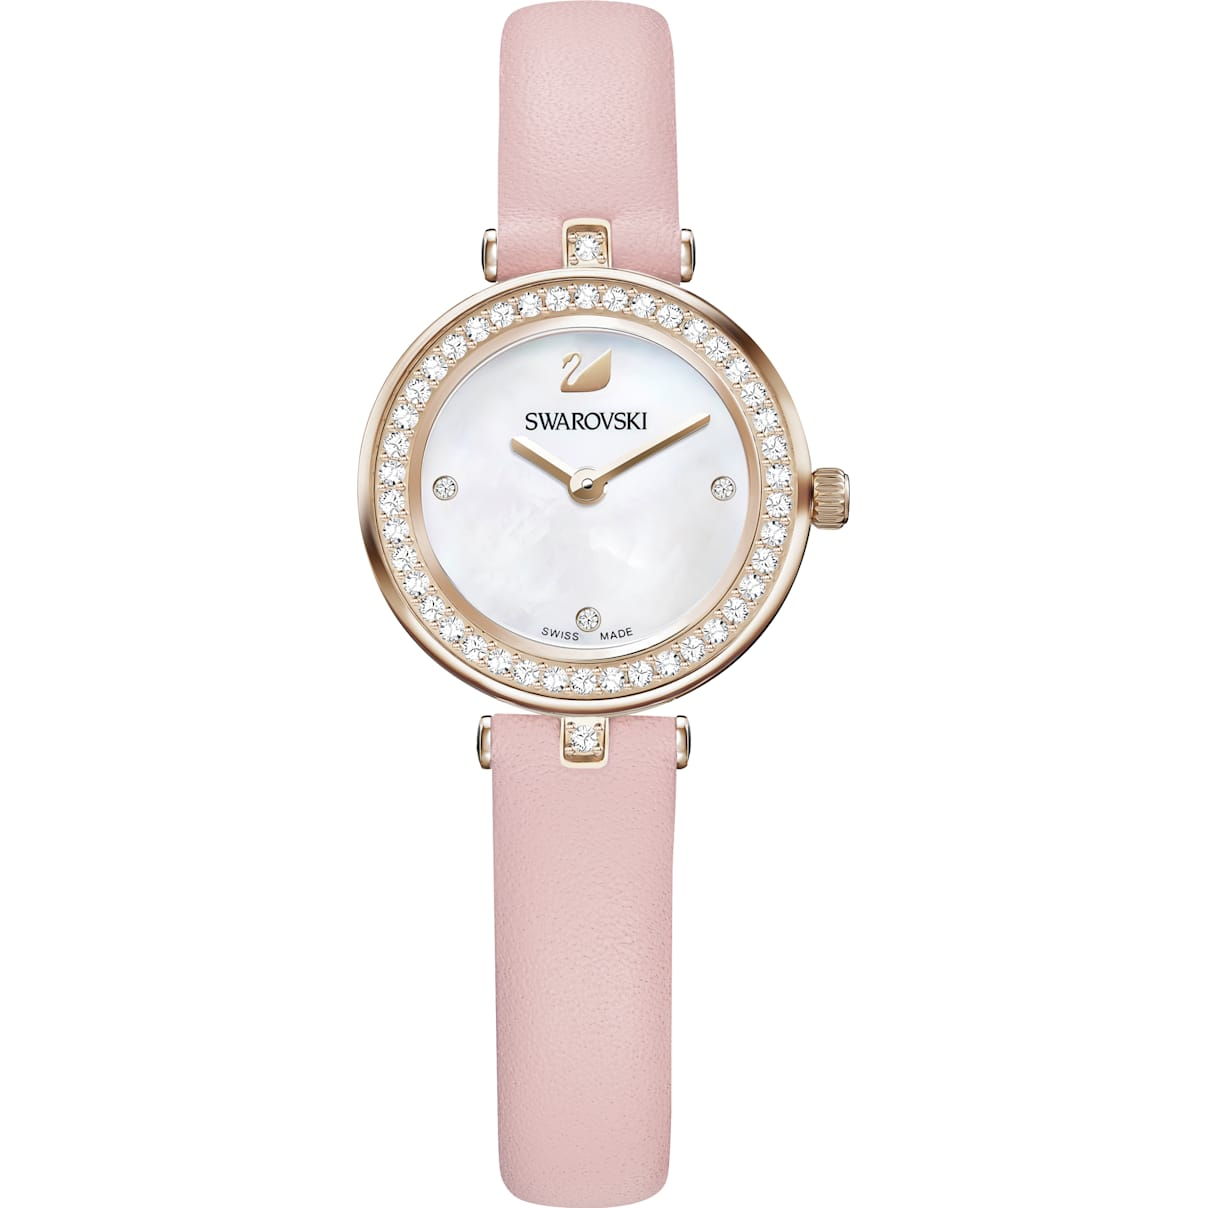 Swarovski Aila Dressy Mini Watch, Leather strap, Pink, Champagne-gold tone PVD